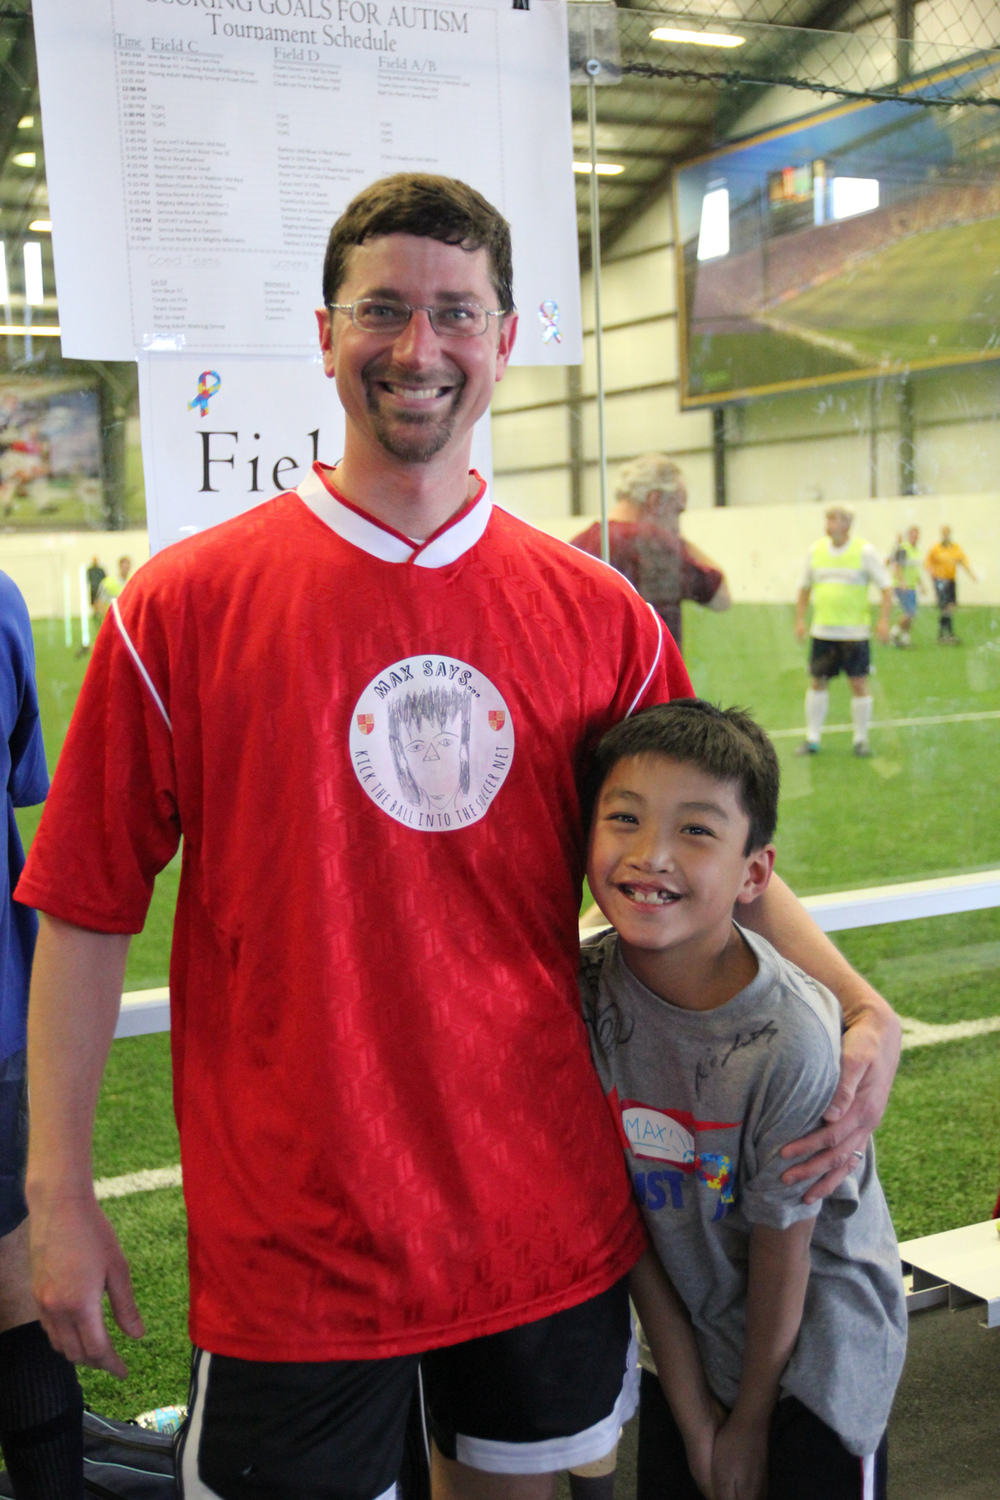 Kevin pictured at a charity soccer tournament with his son, Max, sports a jersey logo designed by Max.